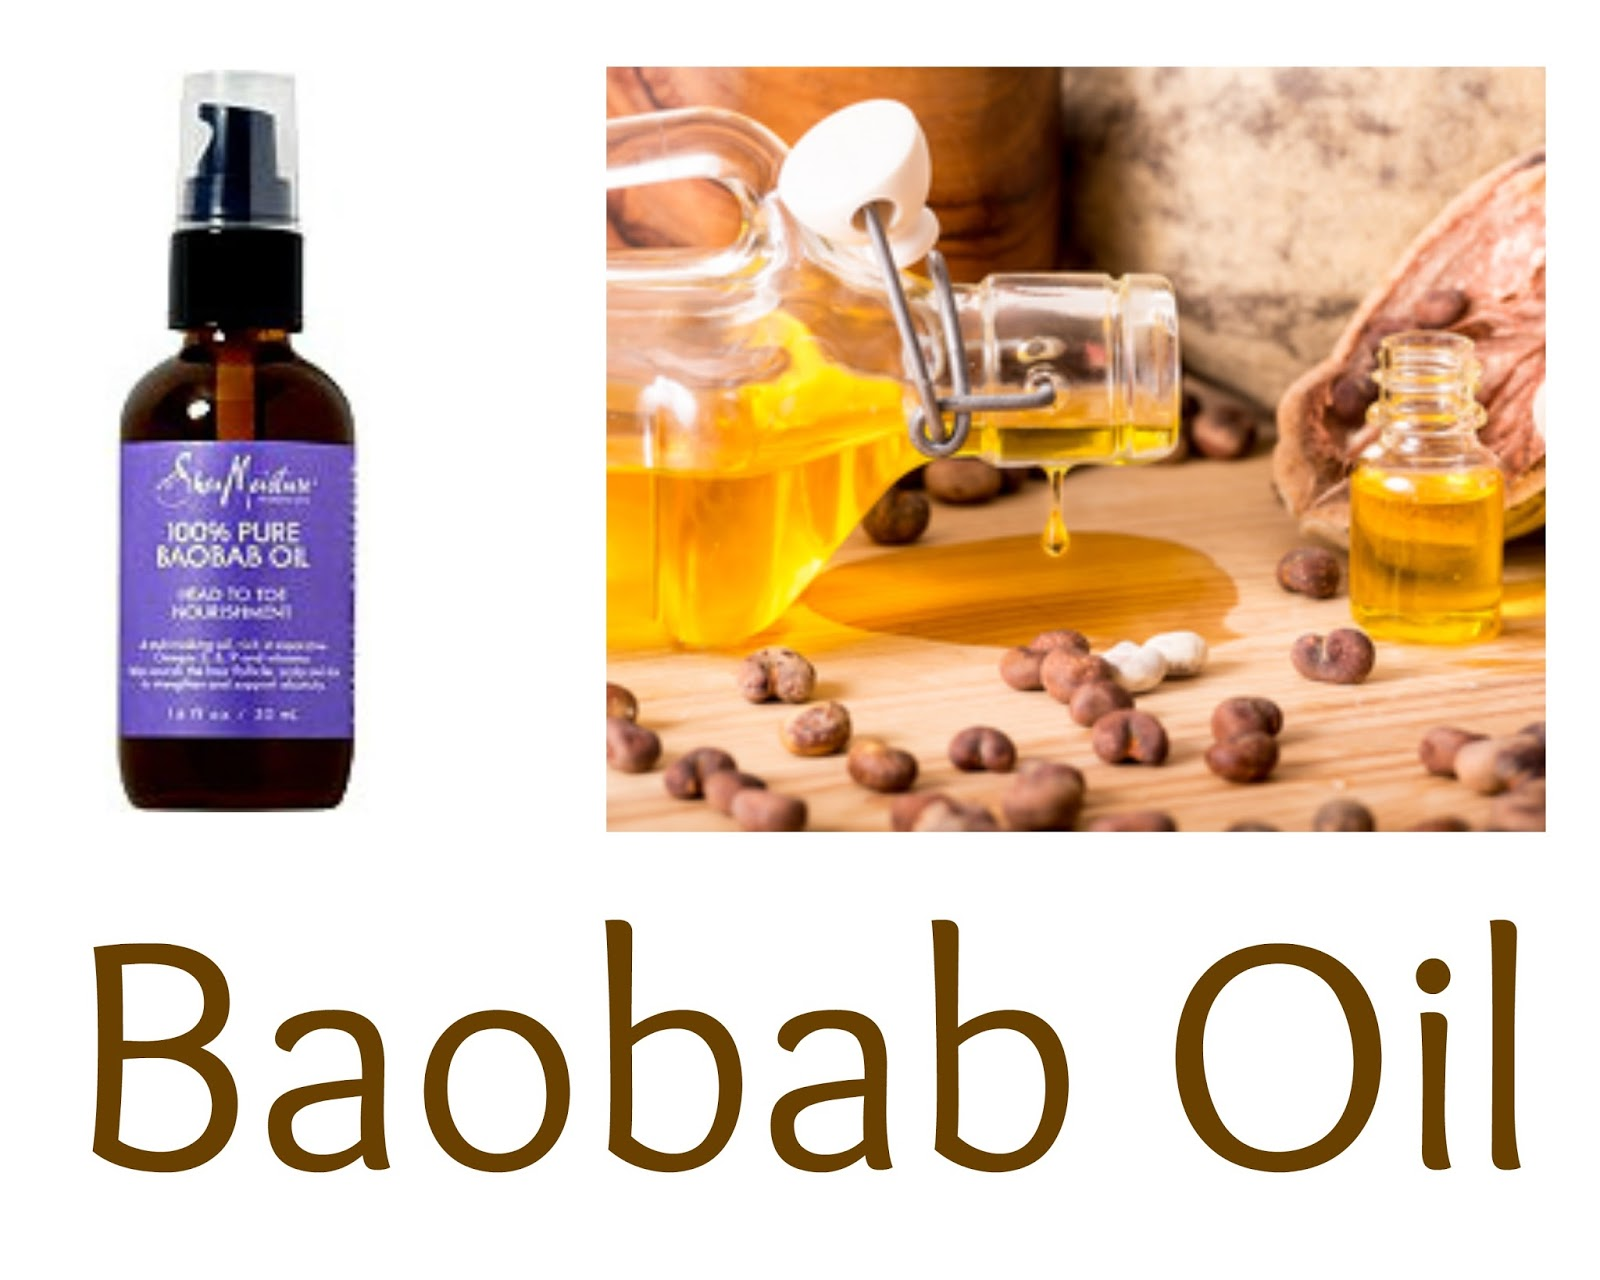 Click here for another great oil for low porosity hair, SheaMoisture 100% Pure Baobab Oil